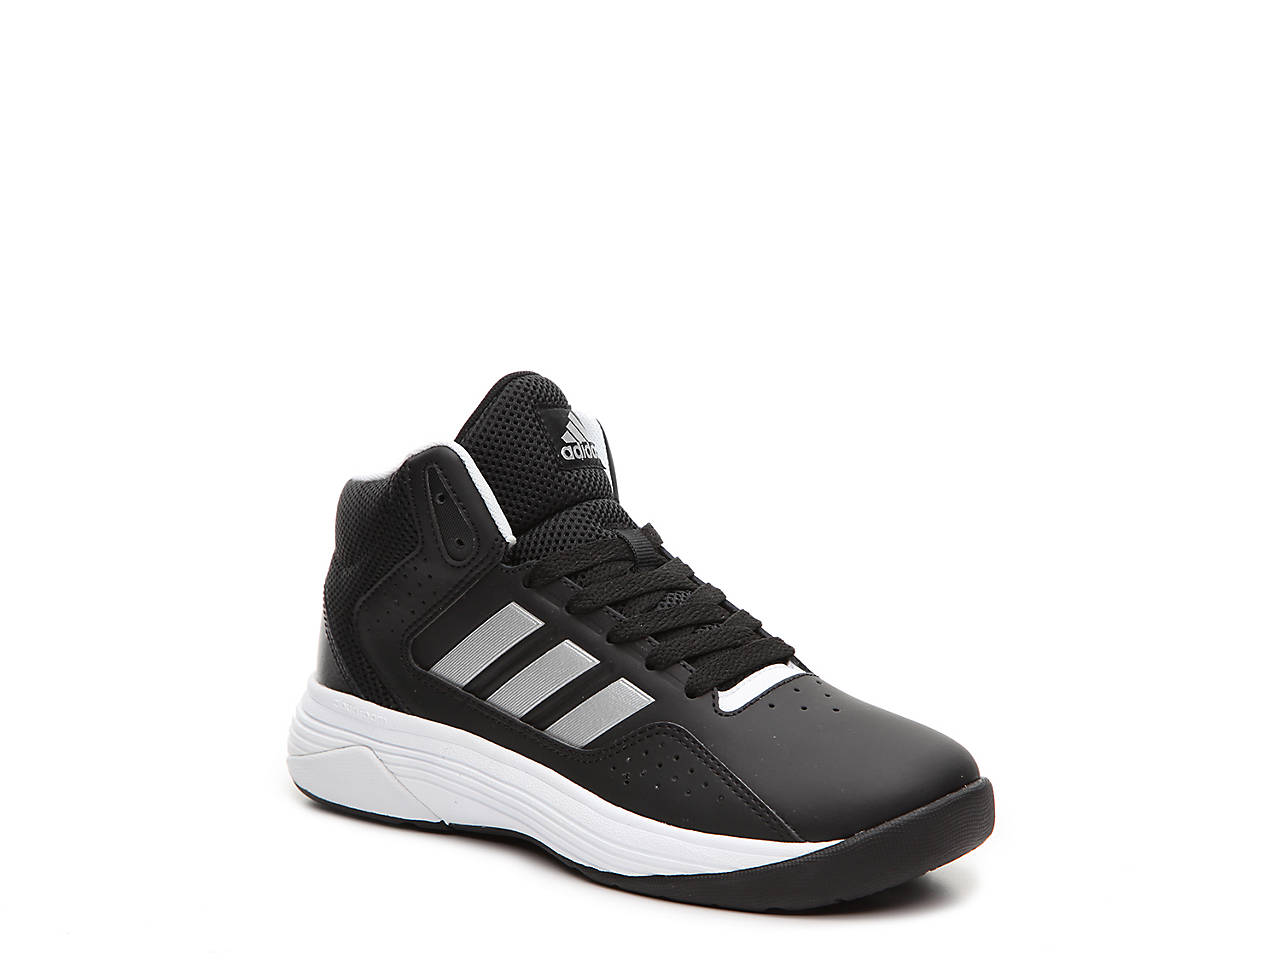 bee0843a5020 adidas Ilation Toddler   Youth High-Top Basketball Shoe Kids Shoes